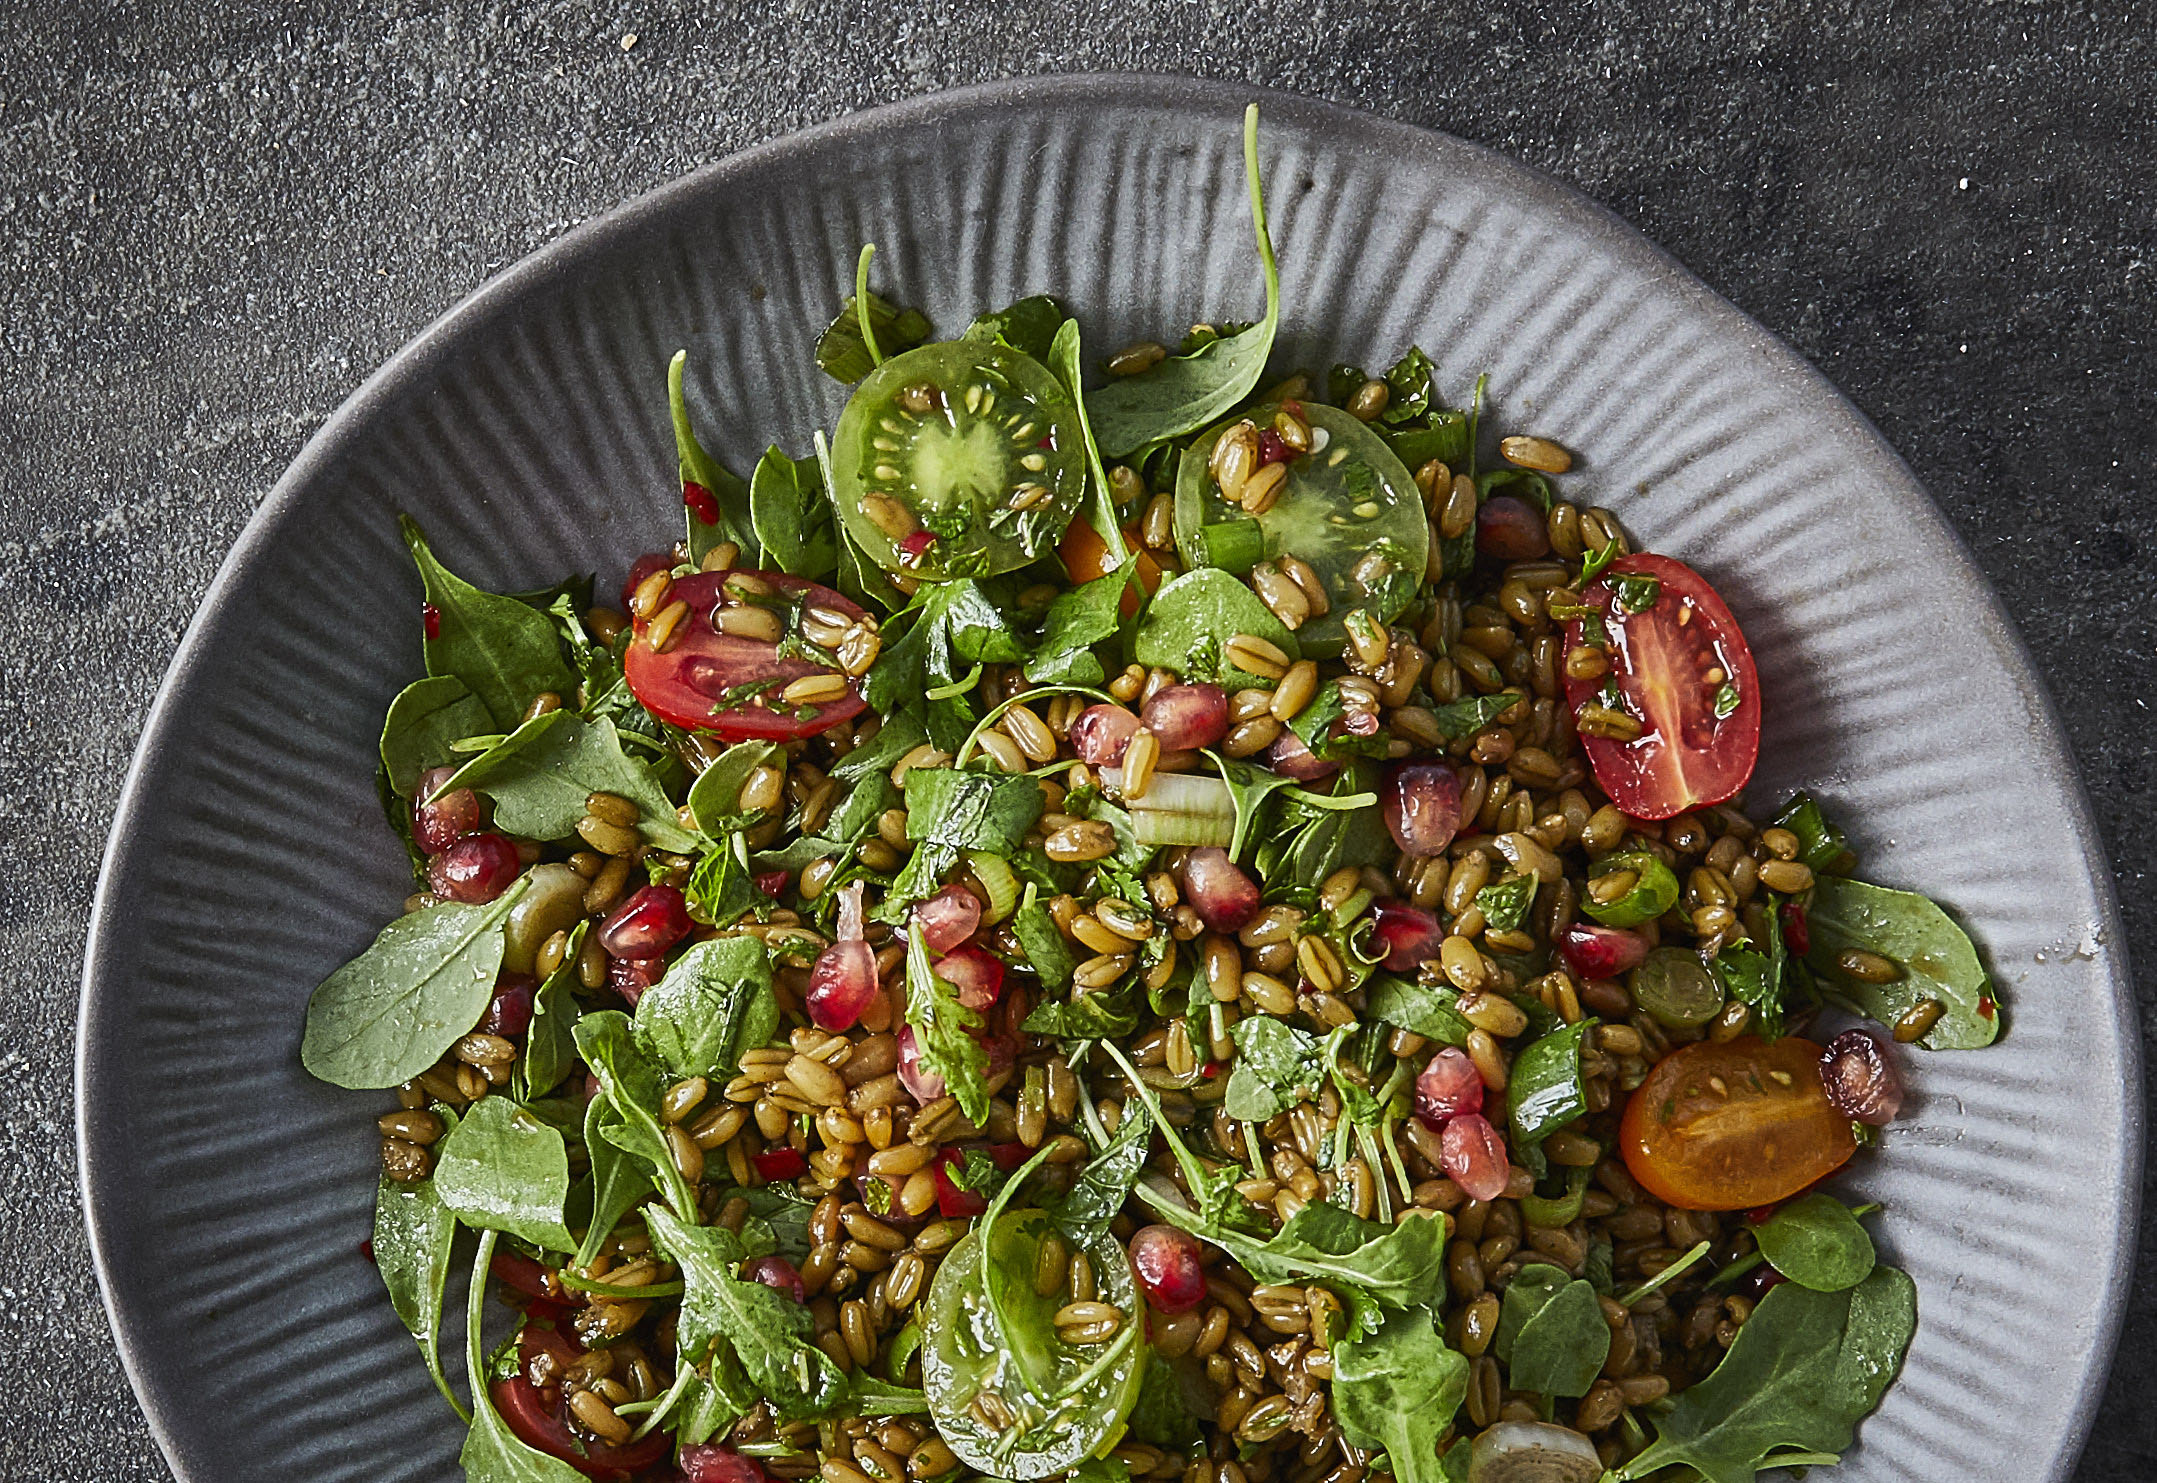 Herby freekeh salad